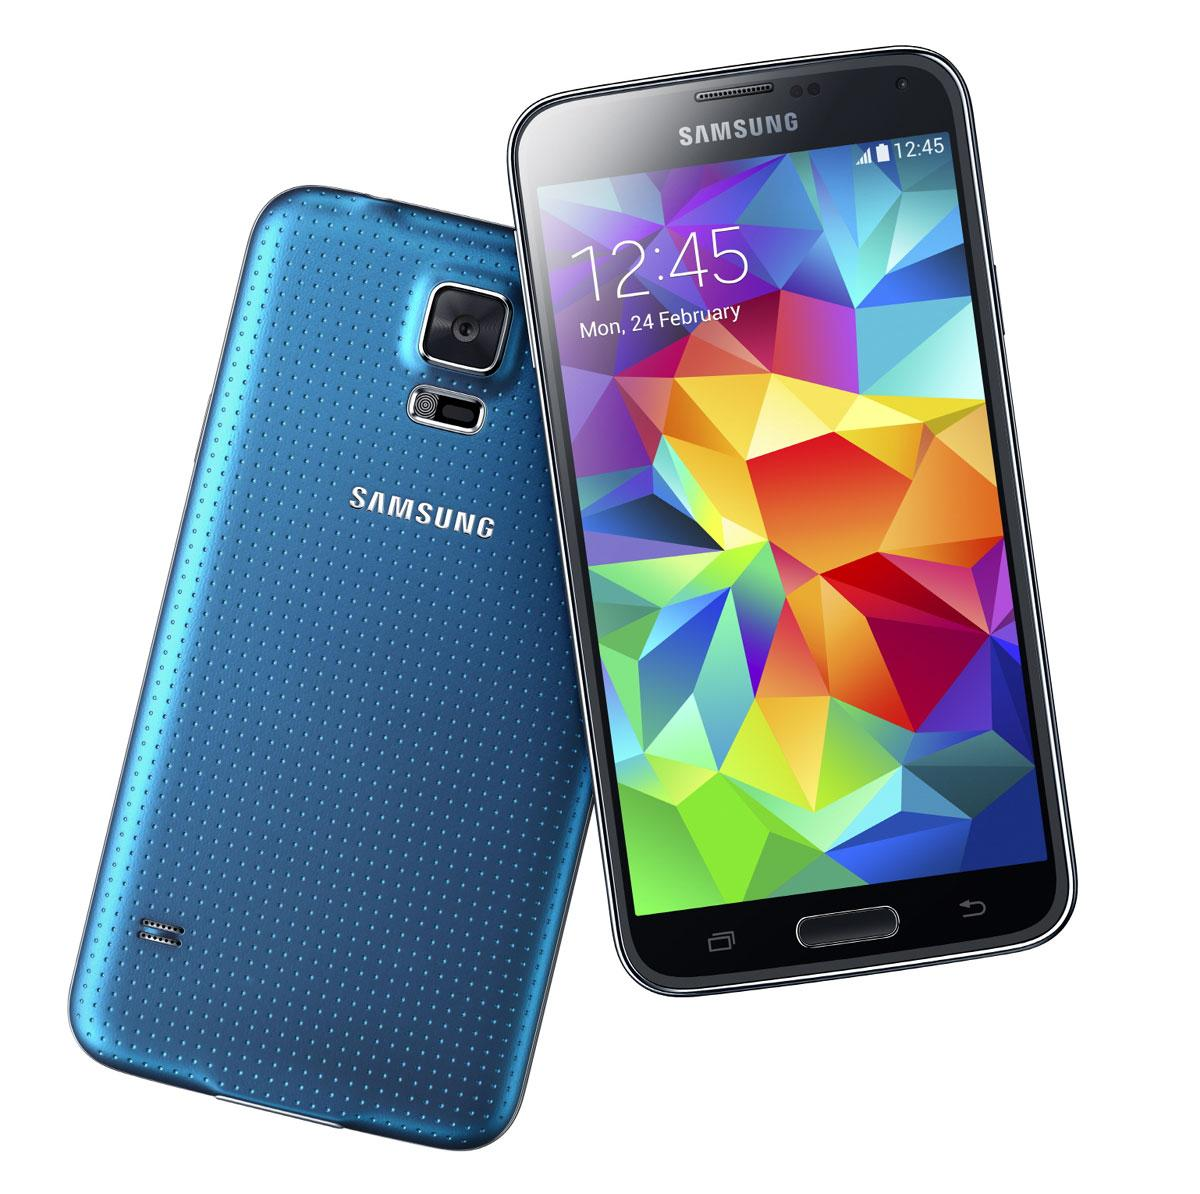 Samsung Galaxy S5 en color azul